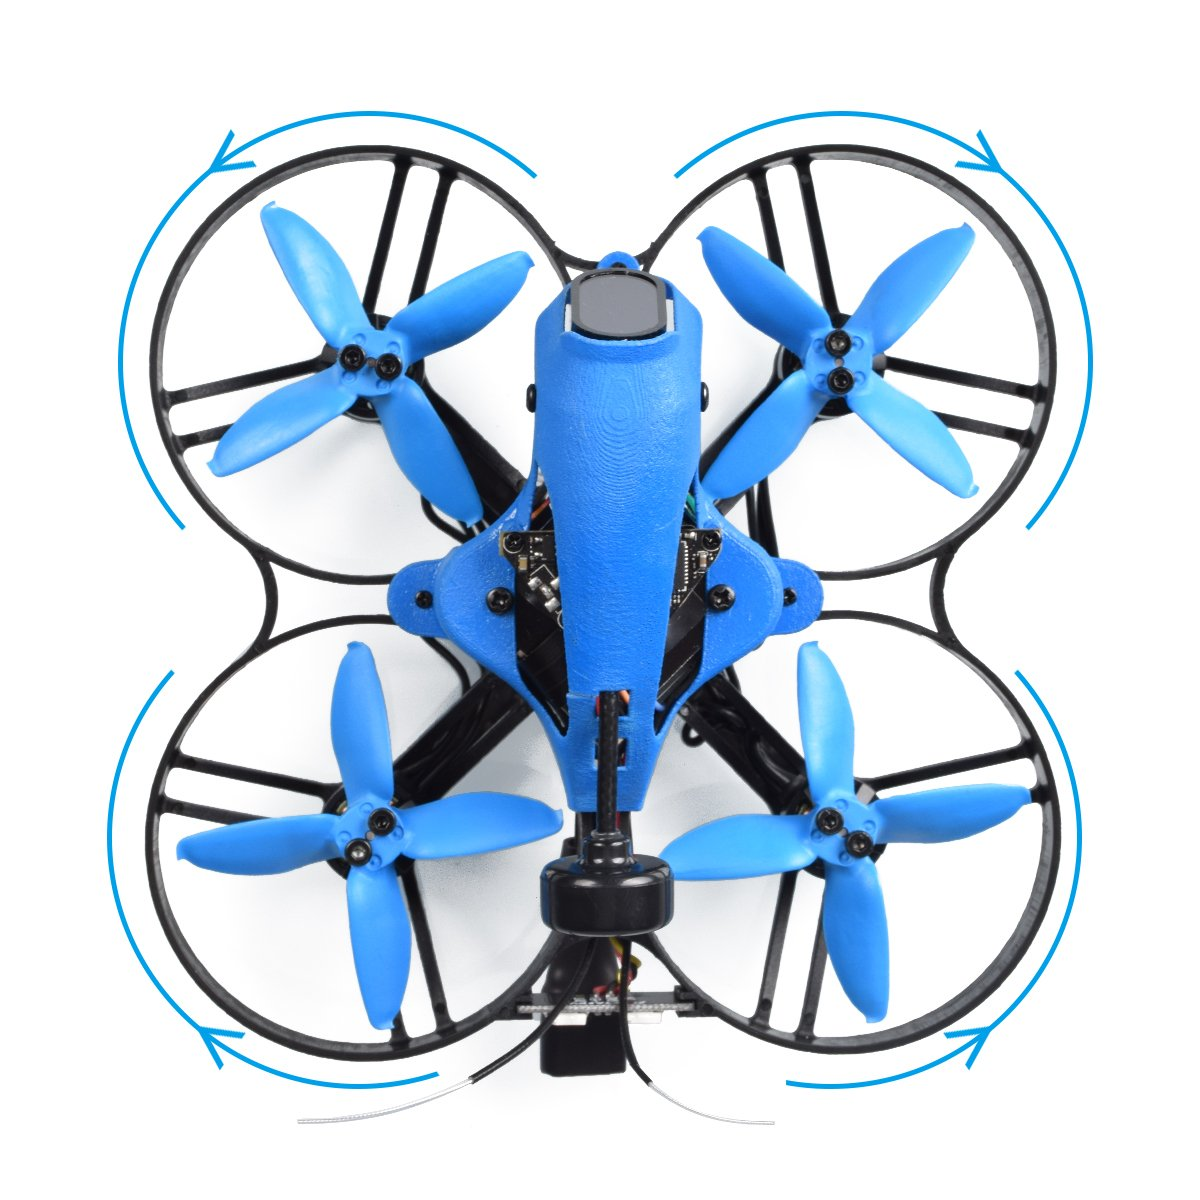 Beta85X 4K-DVR Whoop Quadcopter FPV S-FHSS(4S) 完成機 ※入荷